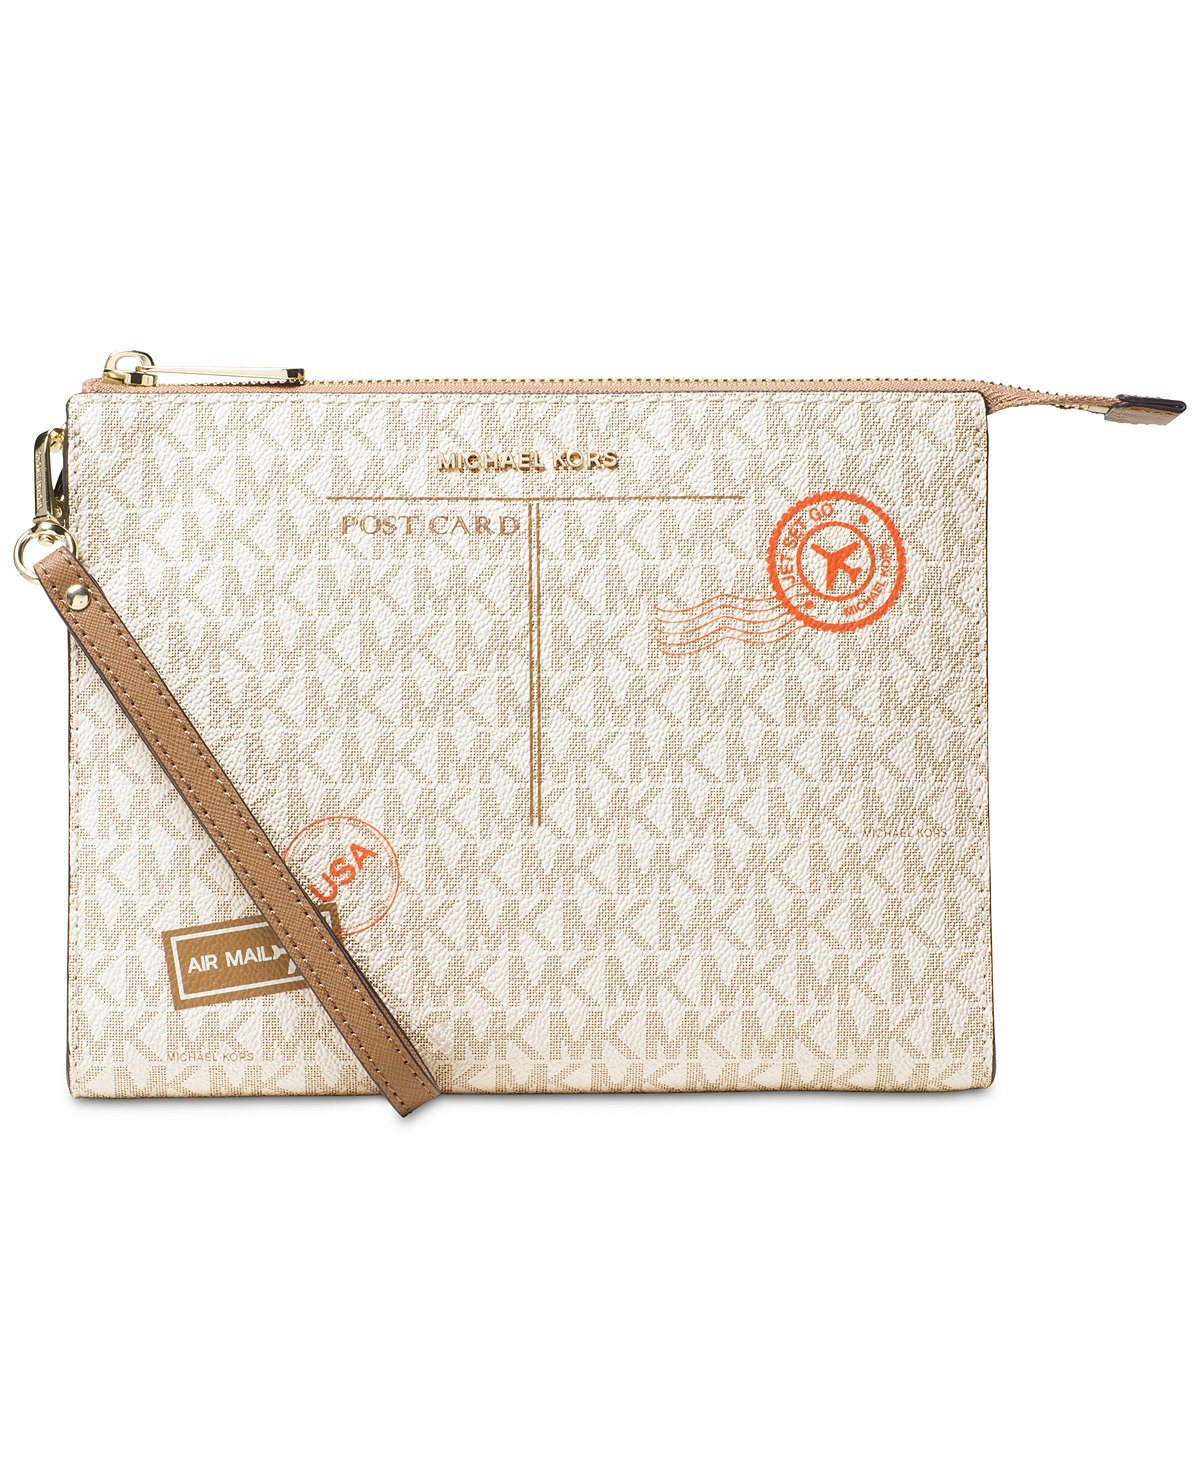 MICHAEL Michael Kors Signature Mail Large Box Travel Pouch, Vanilla/Cashew